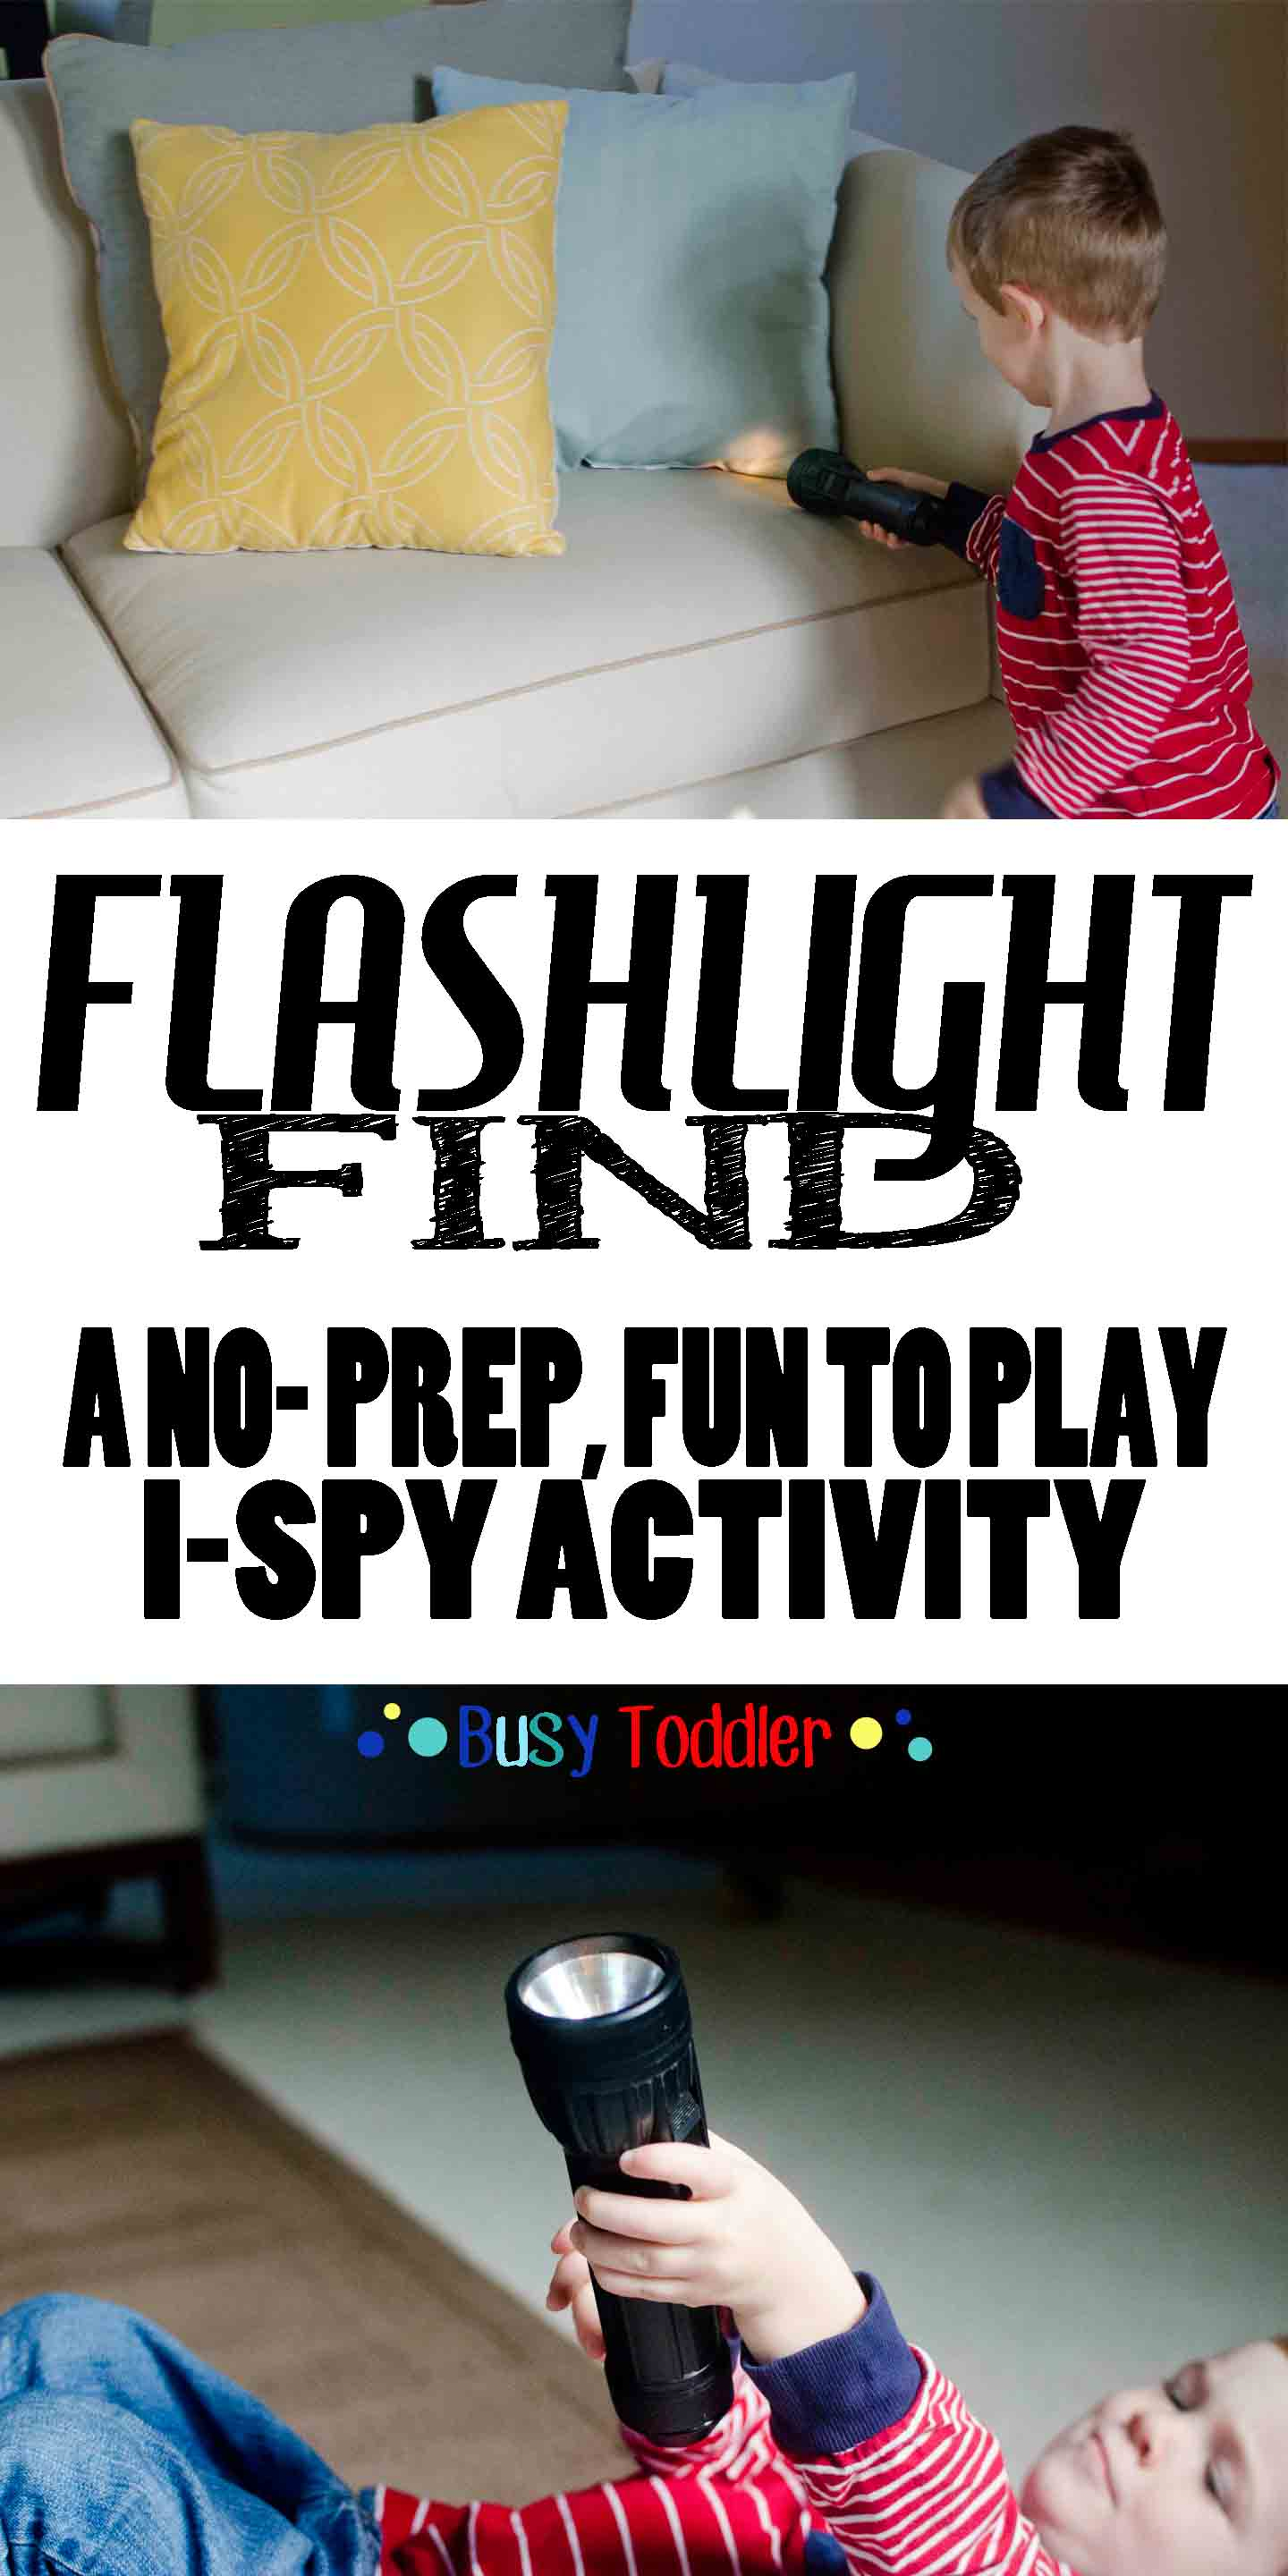 Flashlight Find: a no-prep, funto play I-spy activity